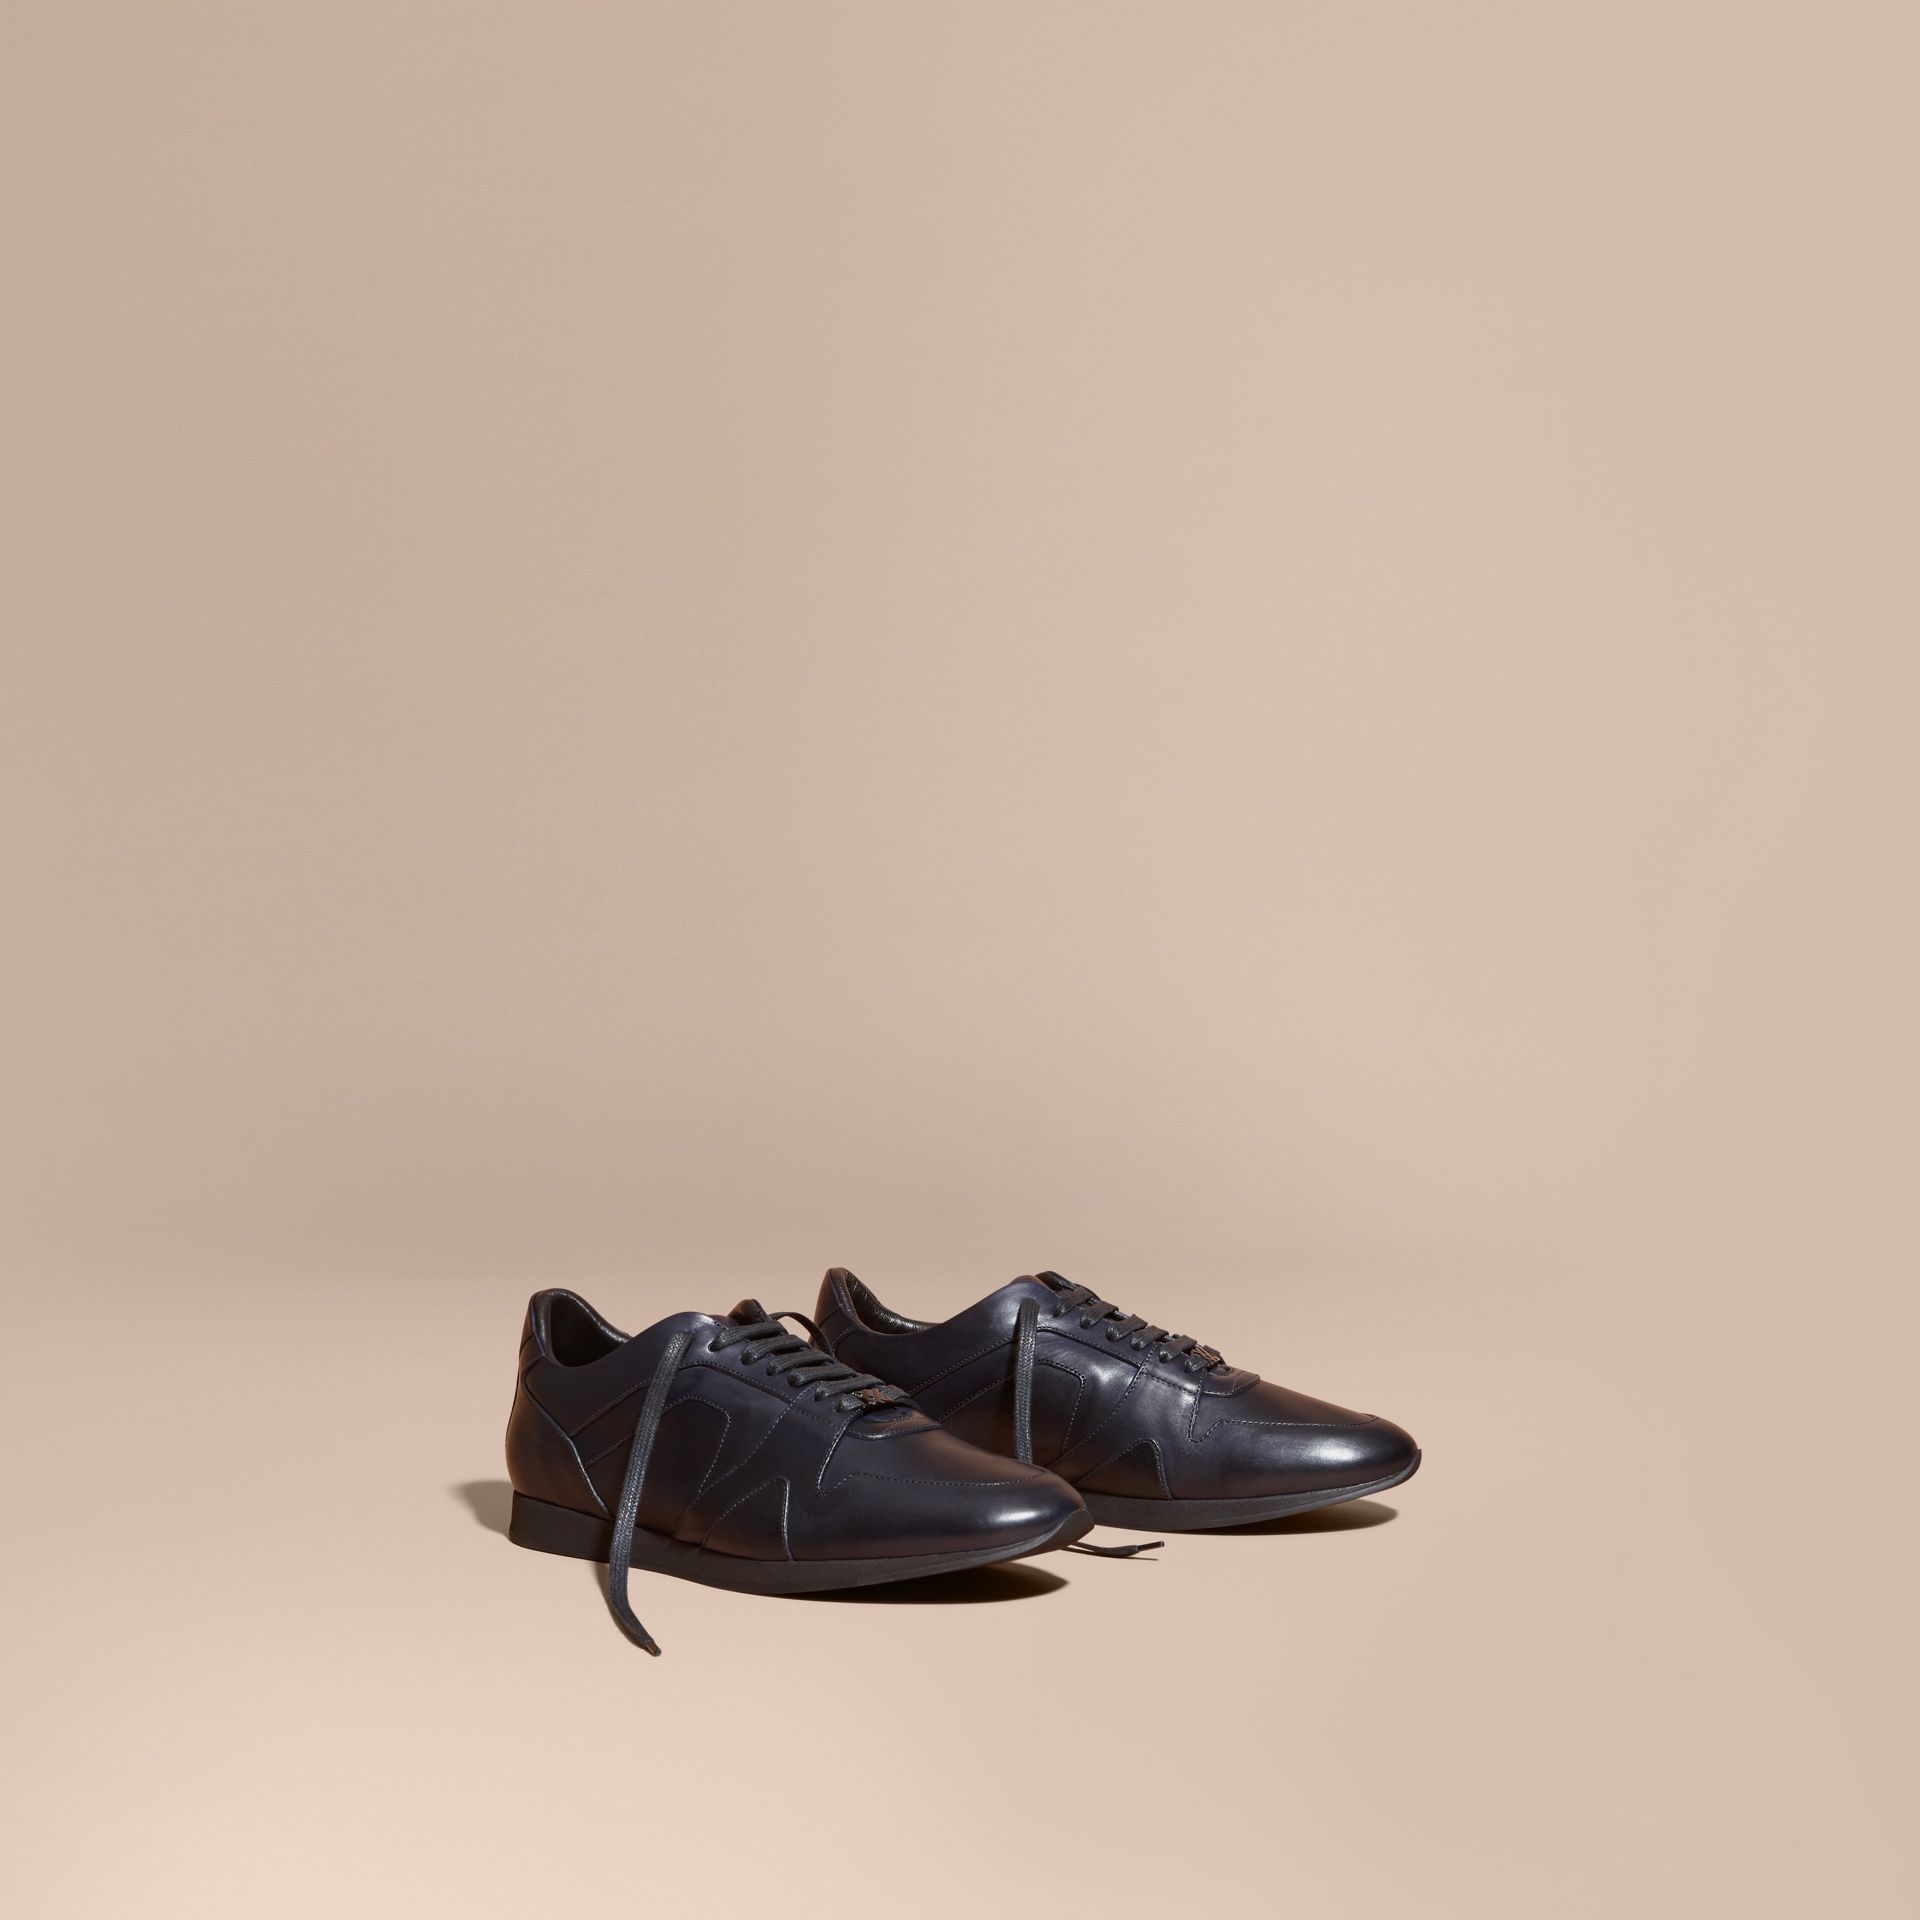 Navy The Field Sneaker in Leather Navy - gallery image 1